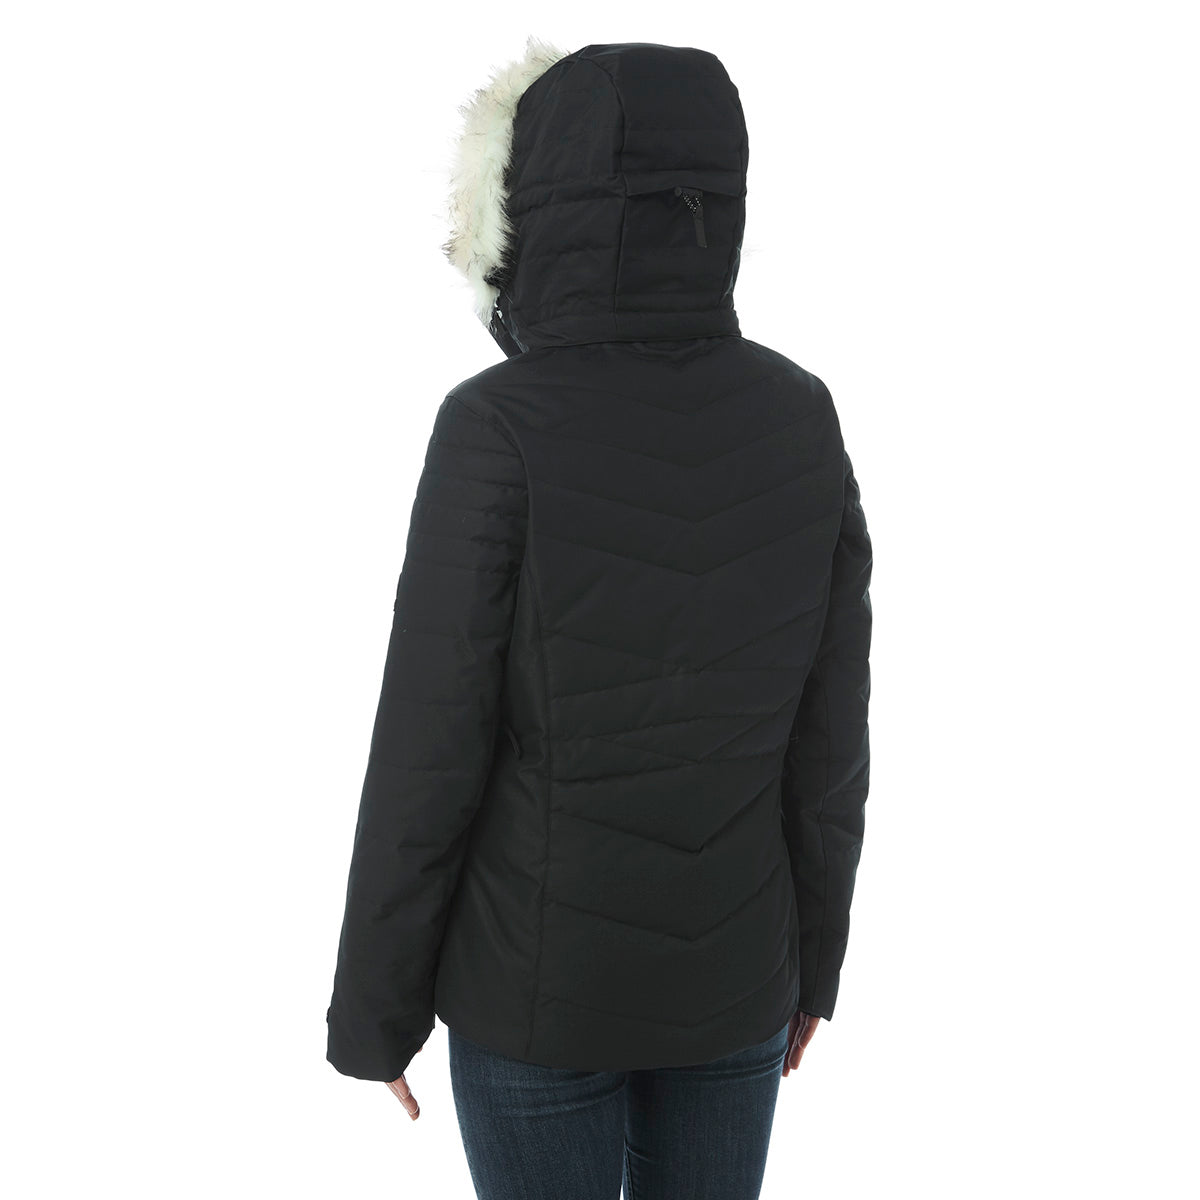 Tidal Womens Down Ski Jacket - Black image 4